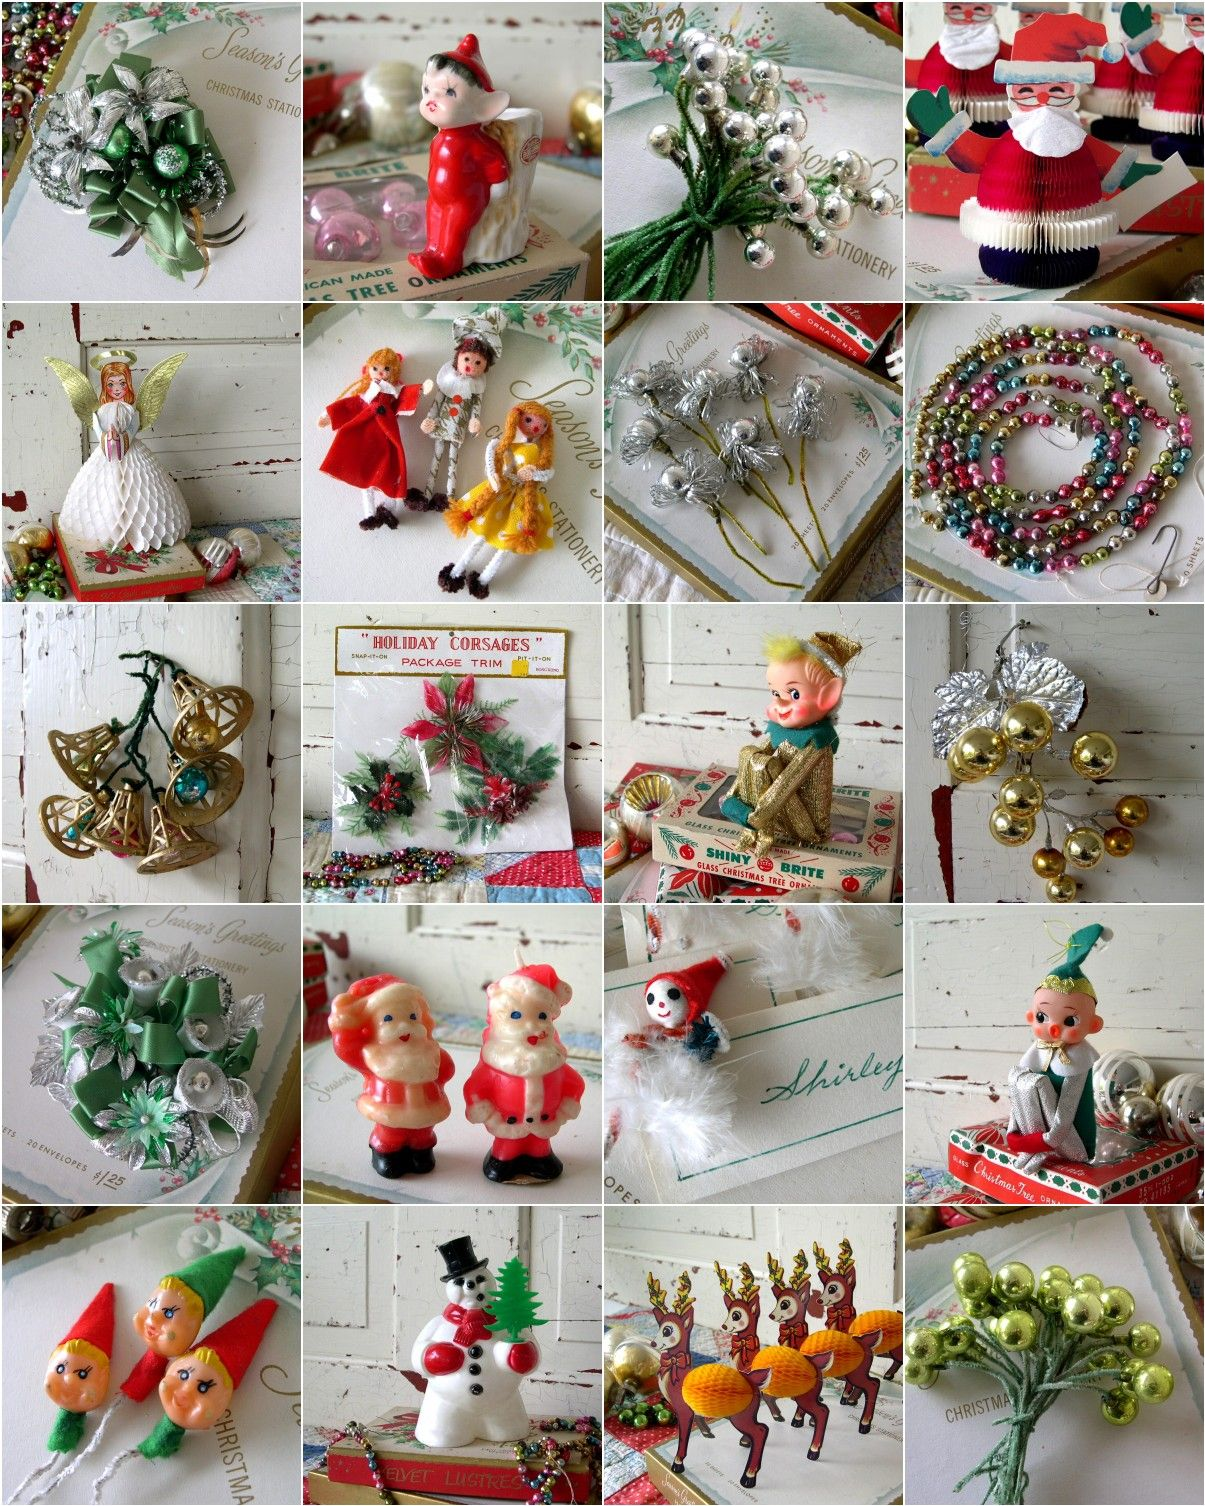 Vintage Christmas Decorations | vintage-christmas-decorations-into-vintage -a-blue-christmas-58295.jpg & Vintage Christmas Decorations | vintage-christmas-decorations-into ...